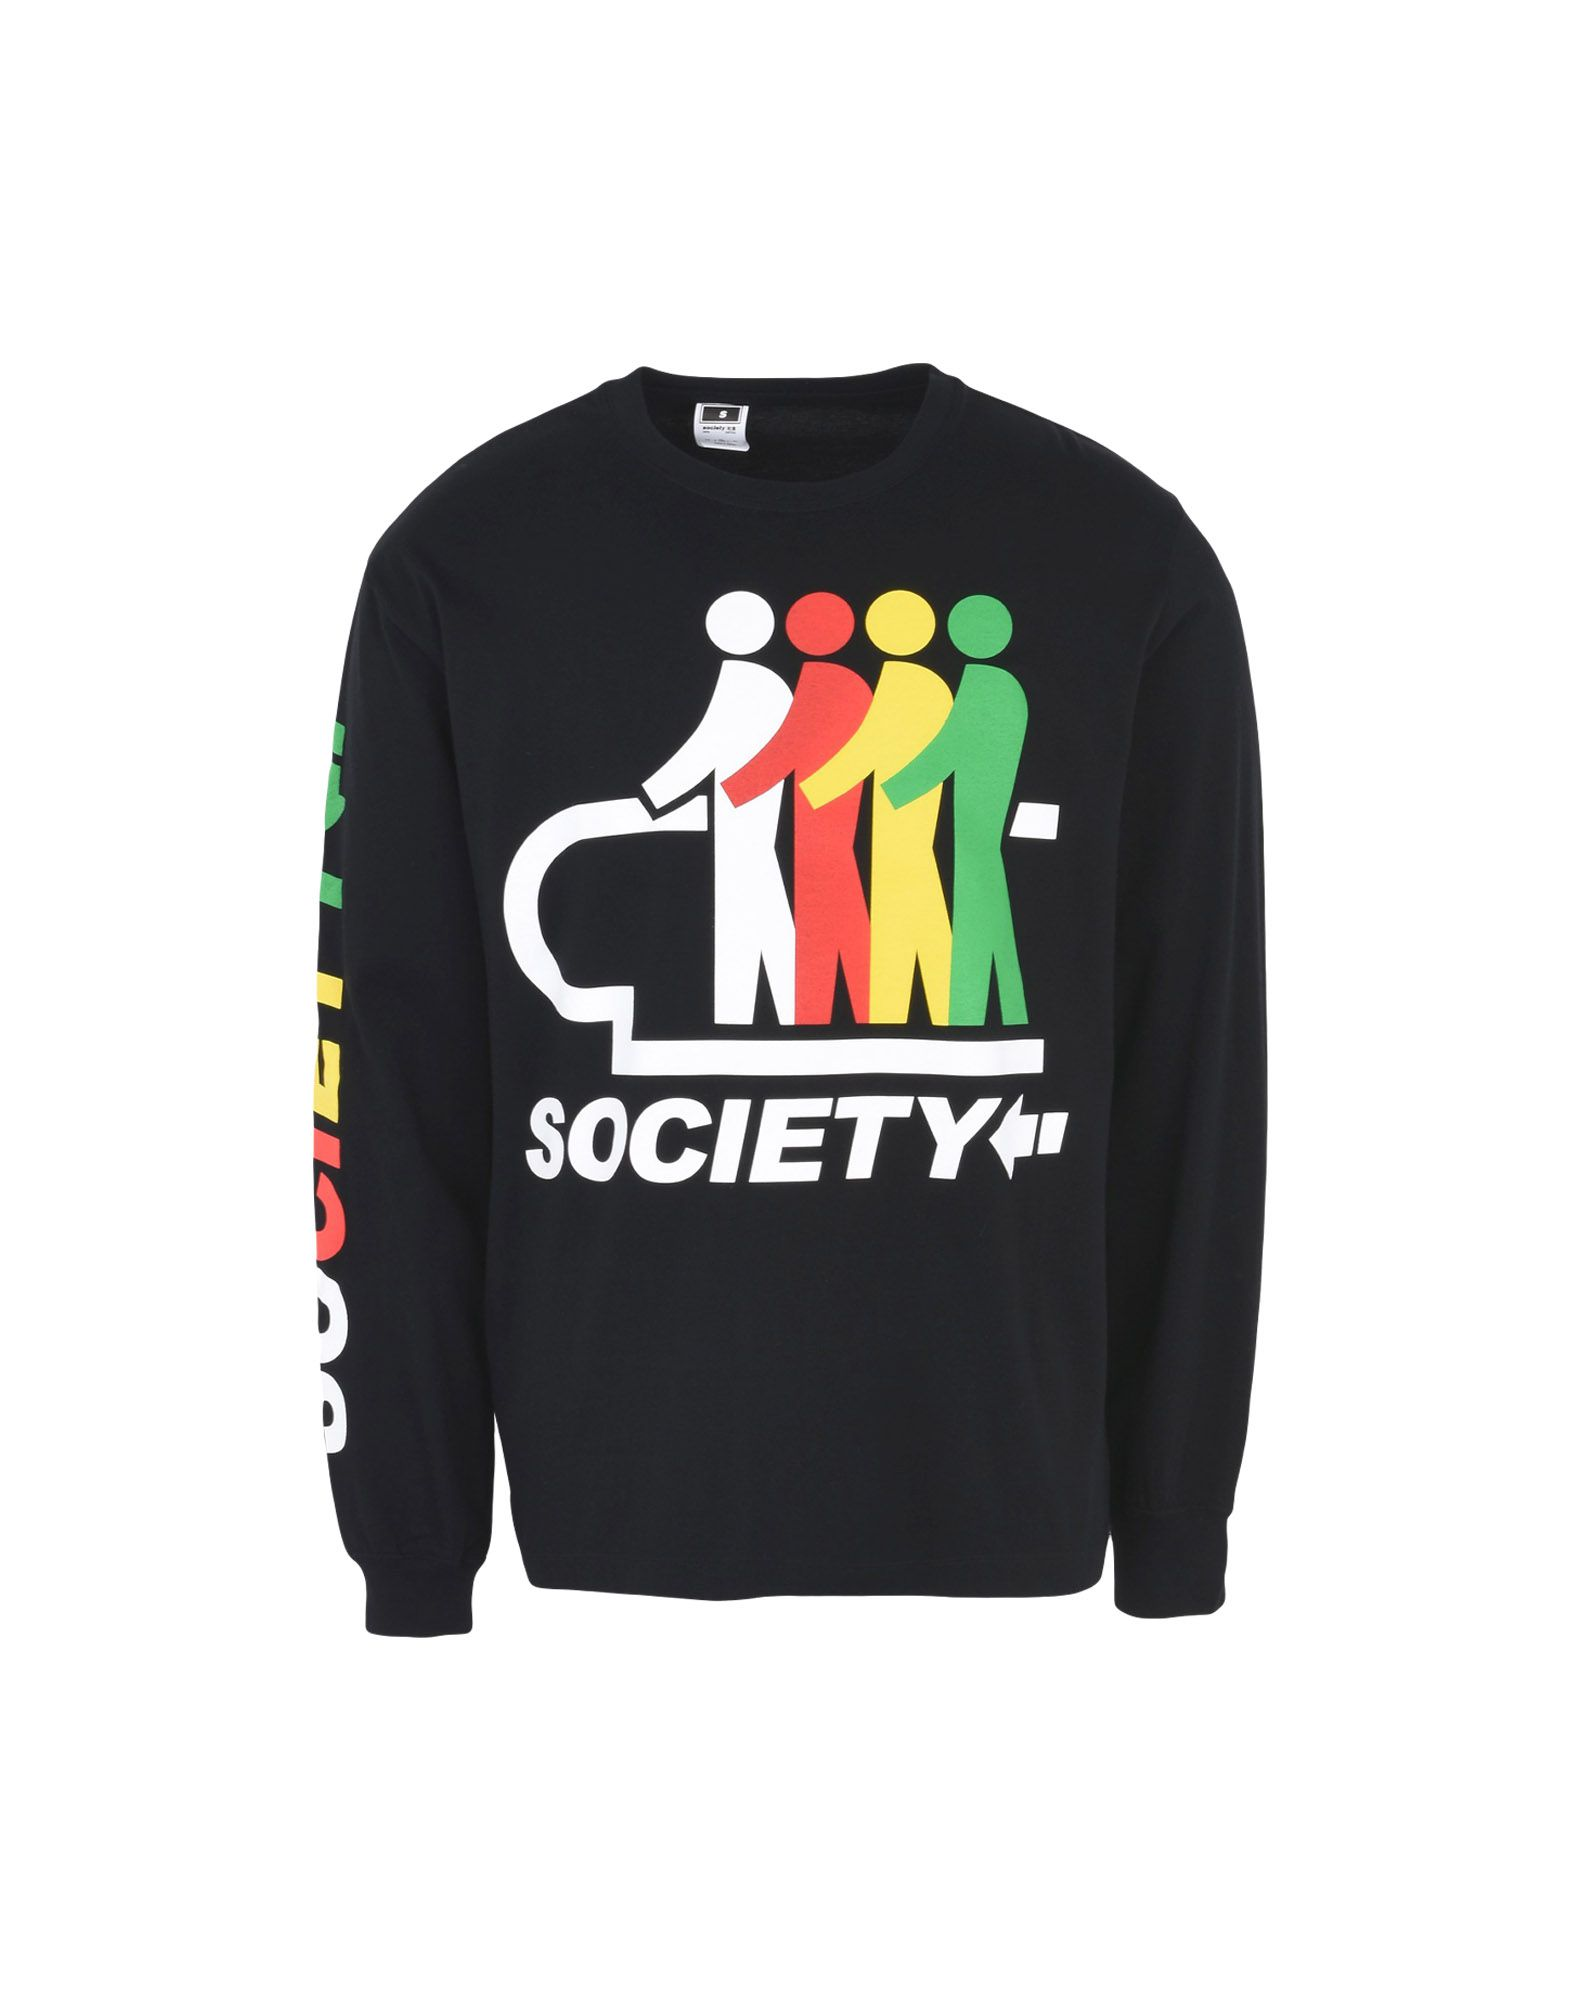 T-Shirt Sportiva Society Shirt Number3 /07 Escalator Lst - Donna - Acquista online su